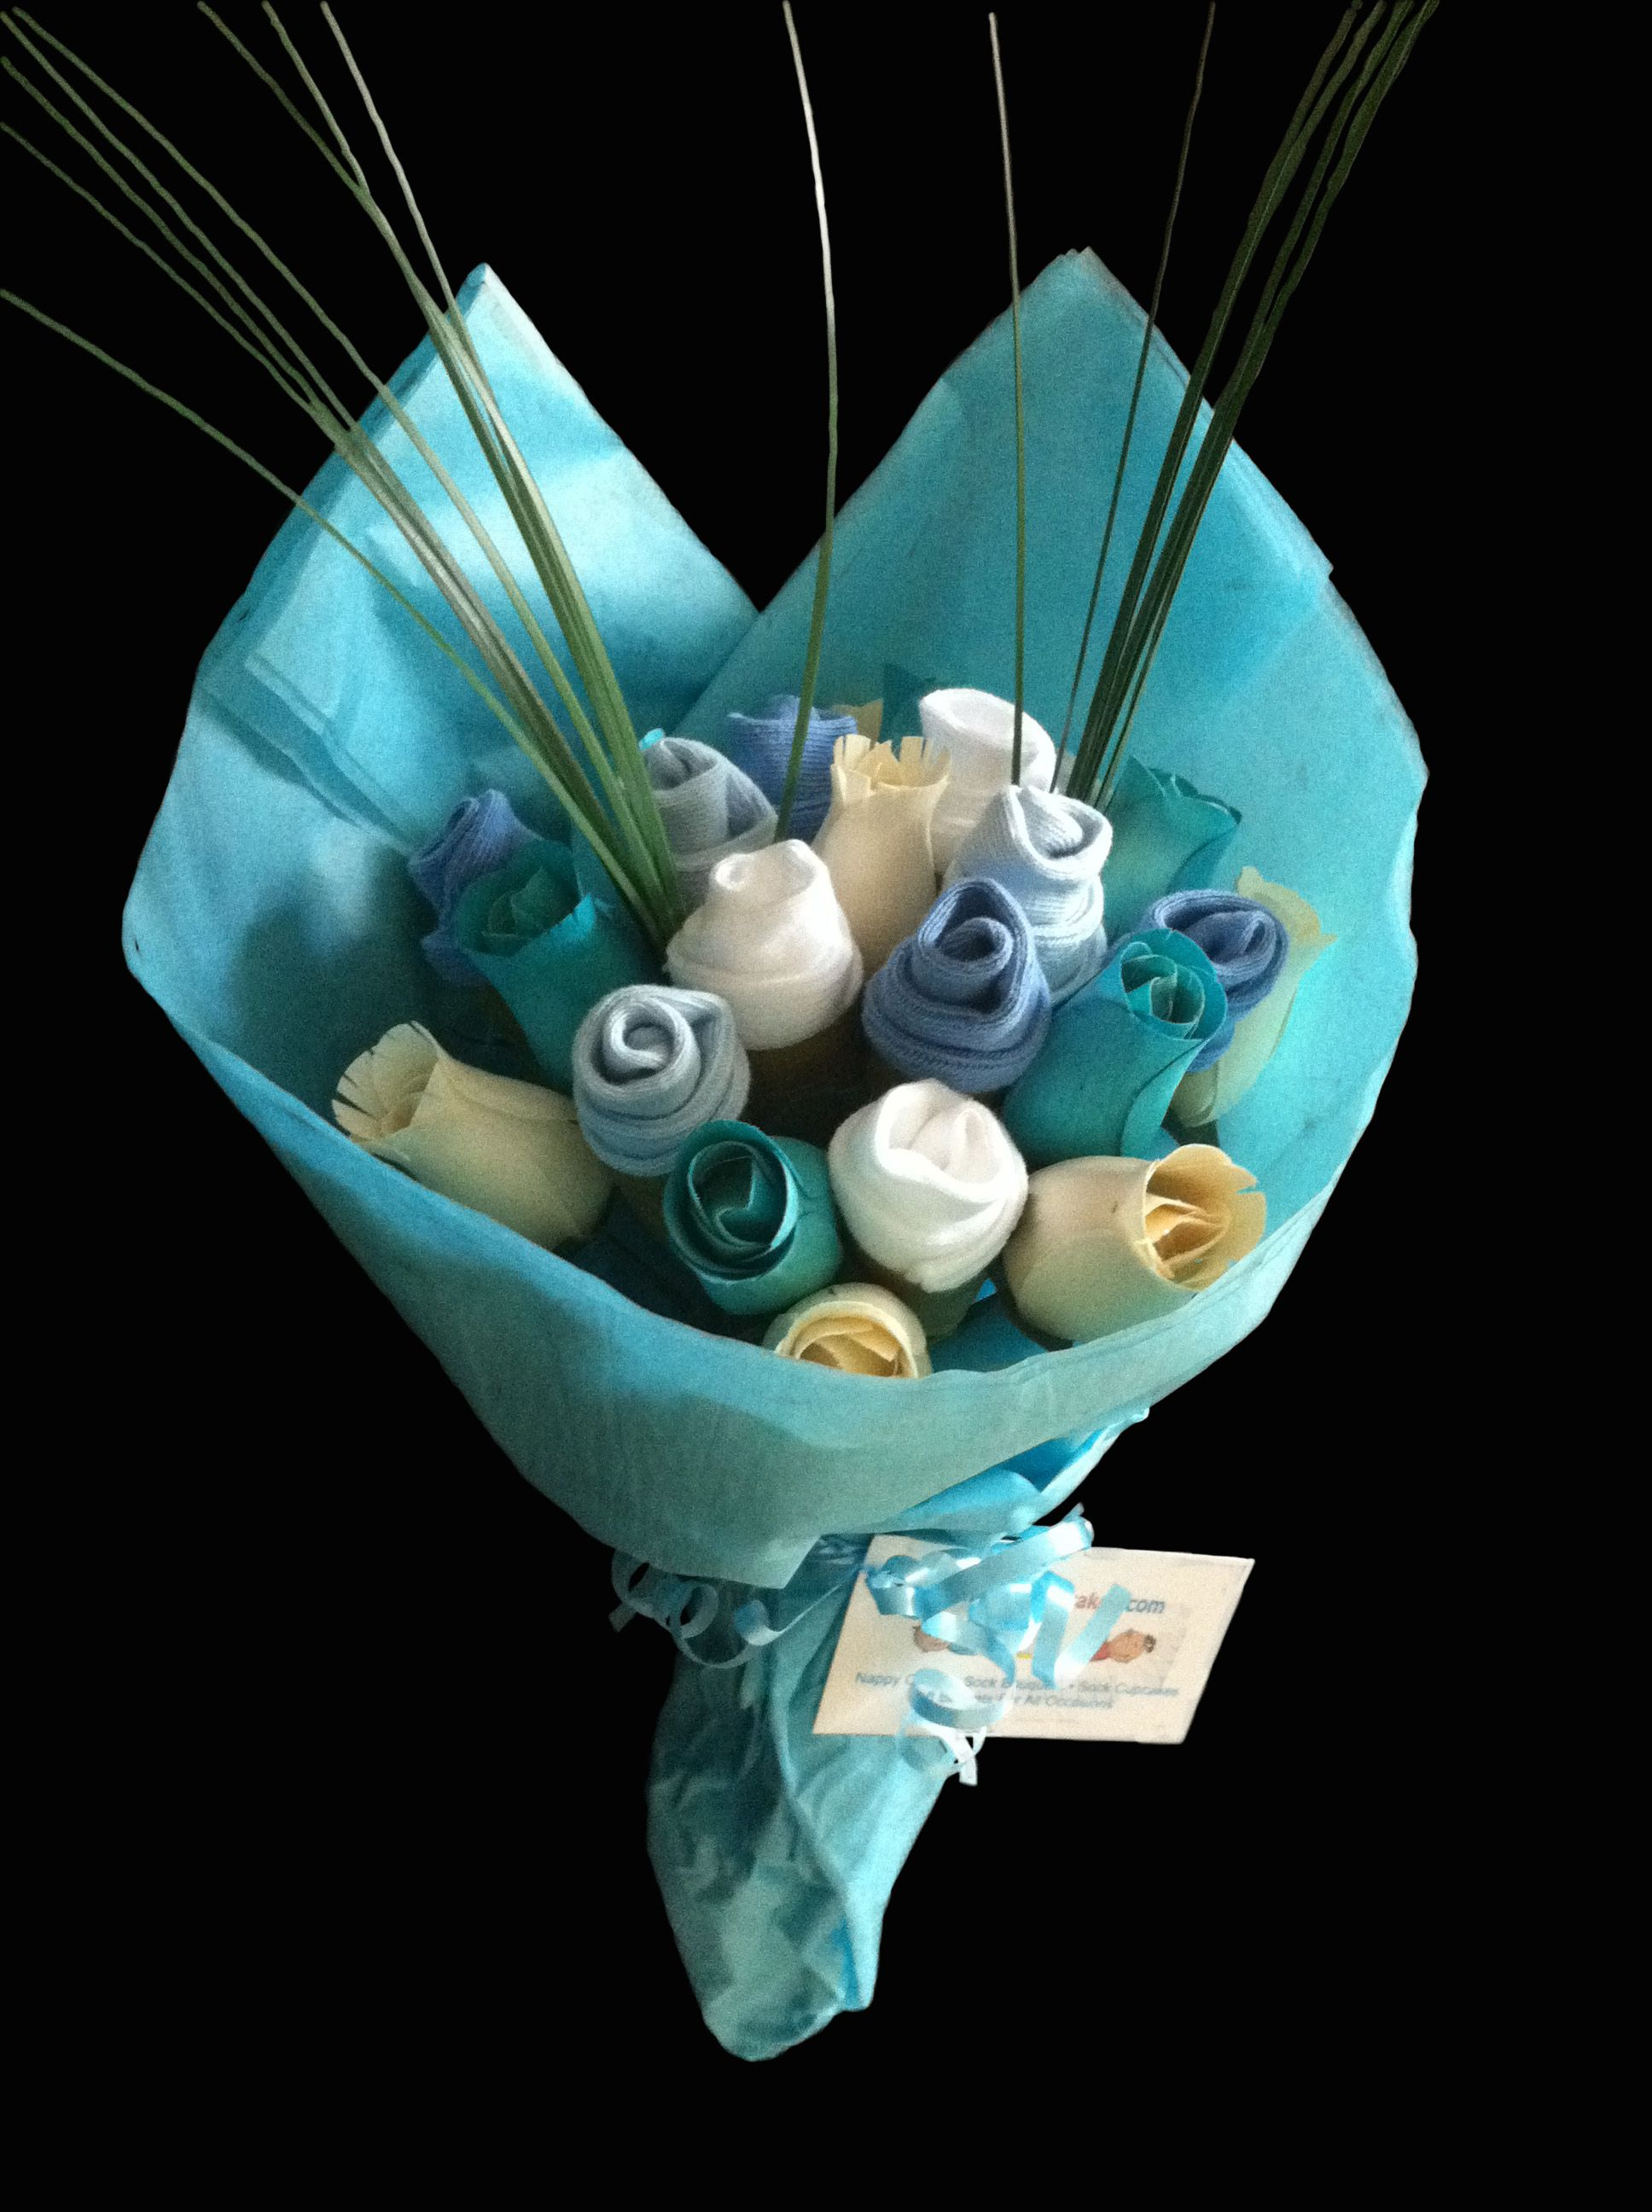 Handmade Large Baby Boy Sock Bouquet Baby Socks Flowers Baby Sock Bouquet Baby Socks Flower Bouquet